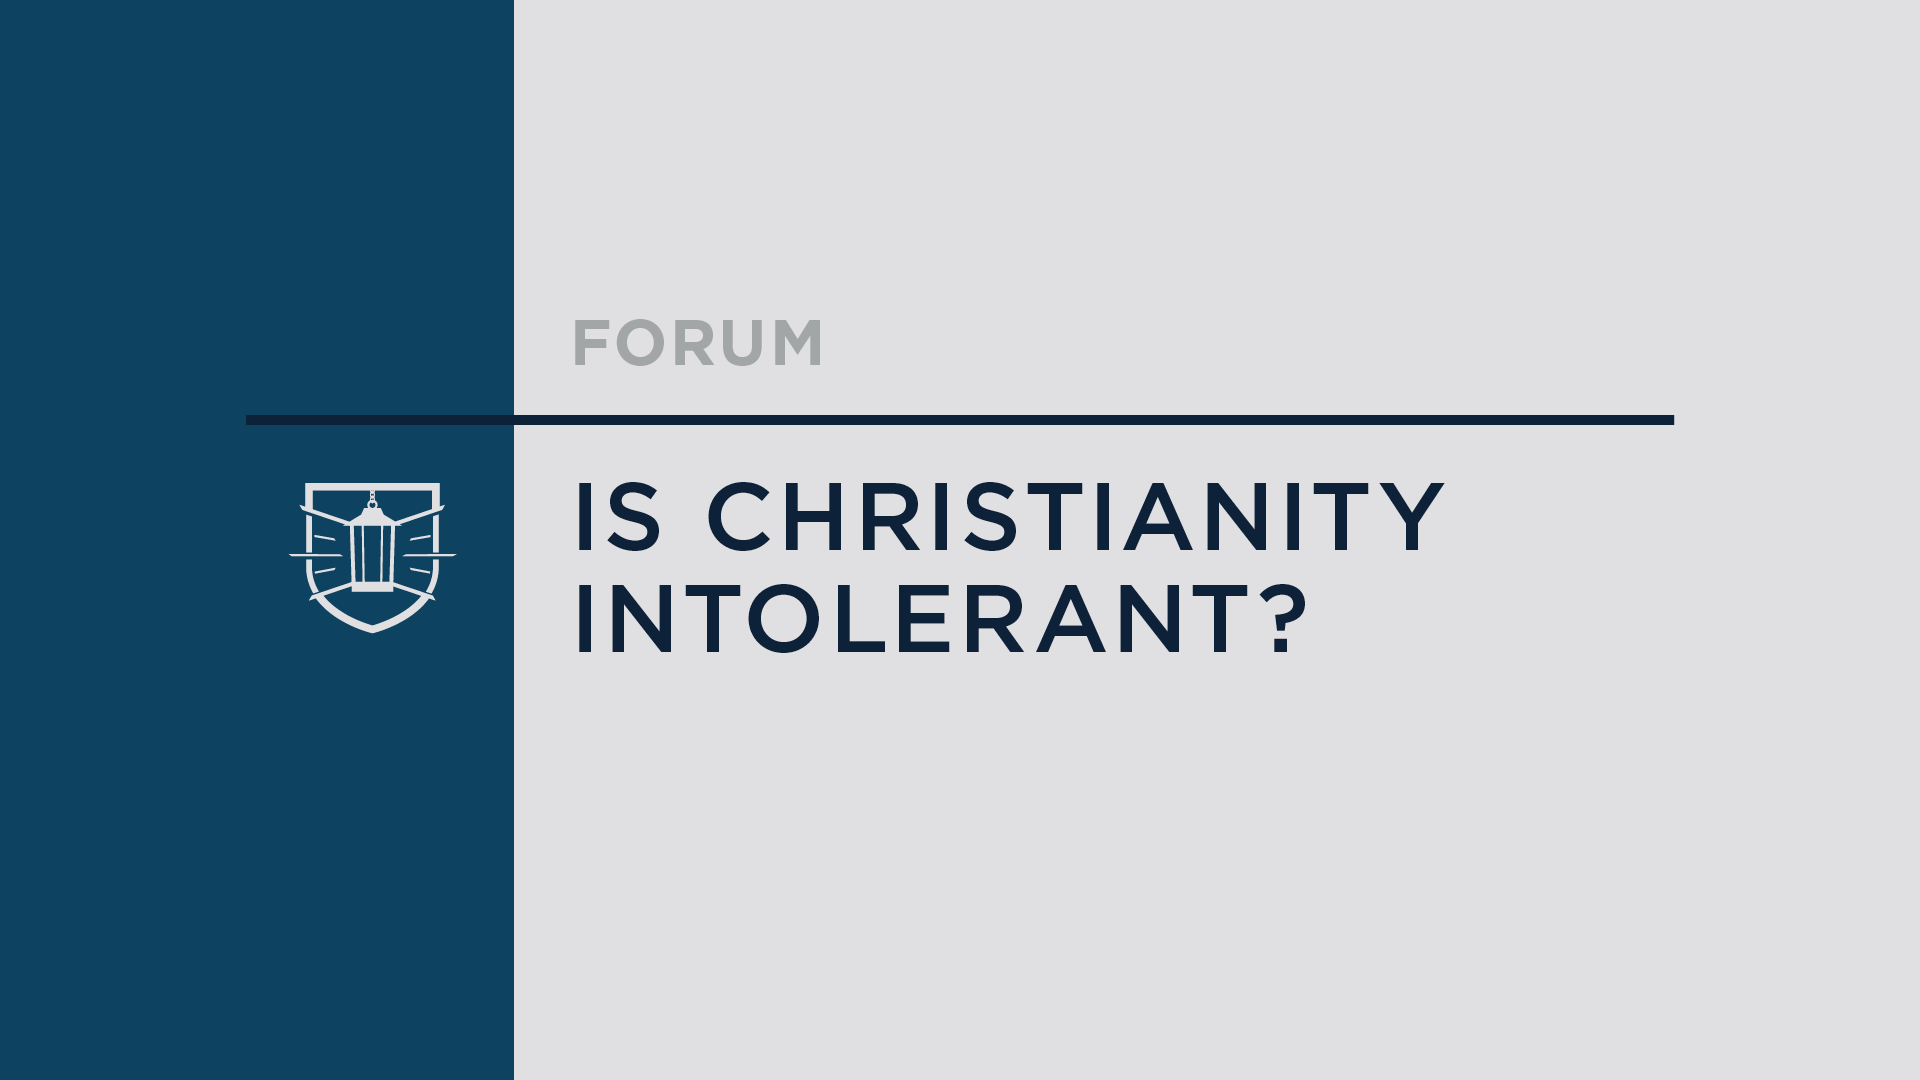 Is Christianity Intolerant?